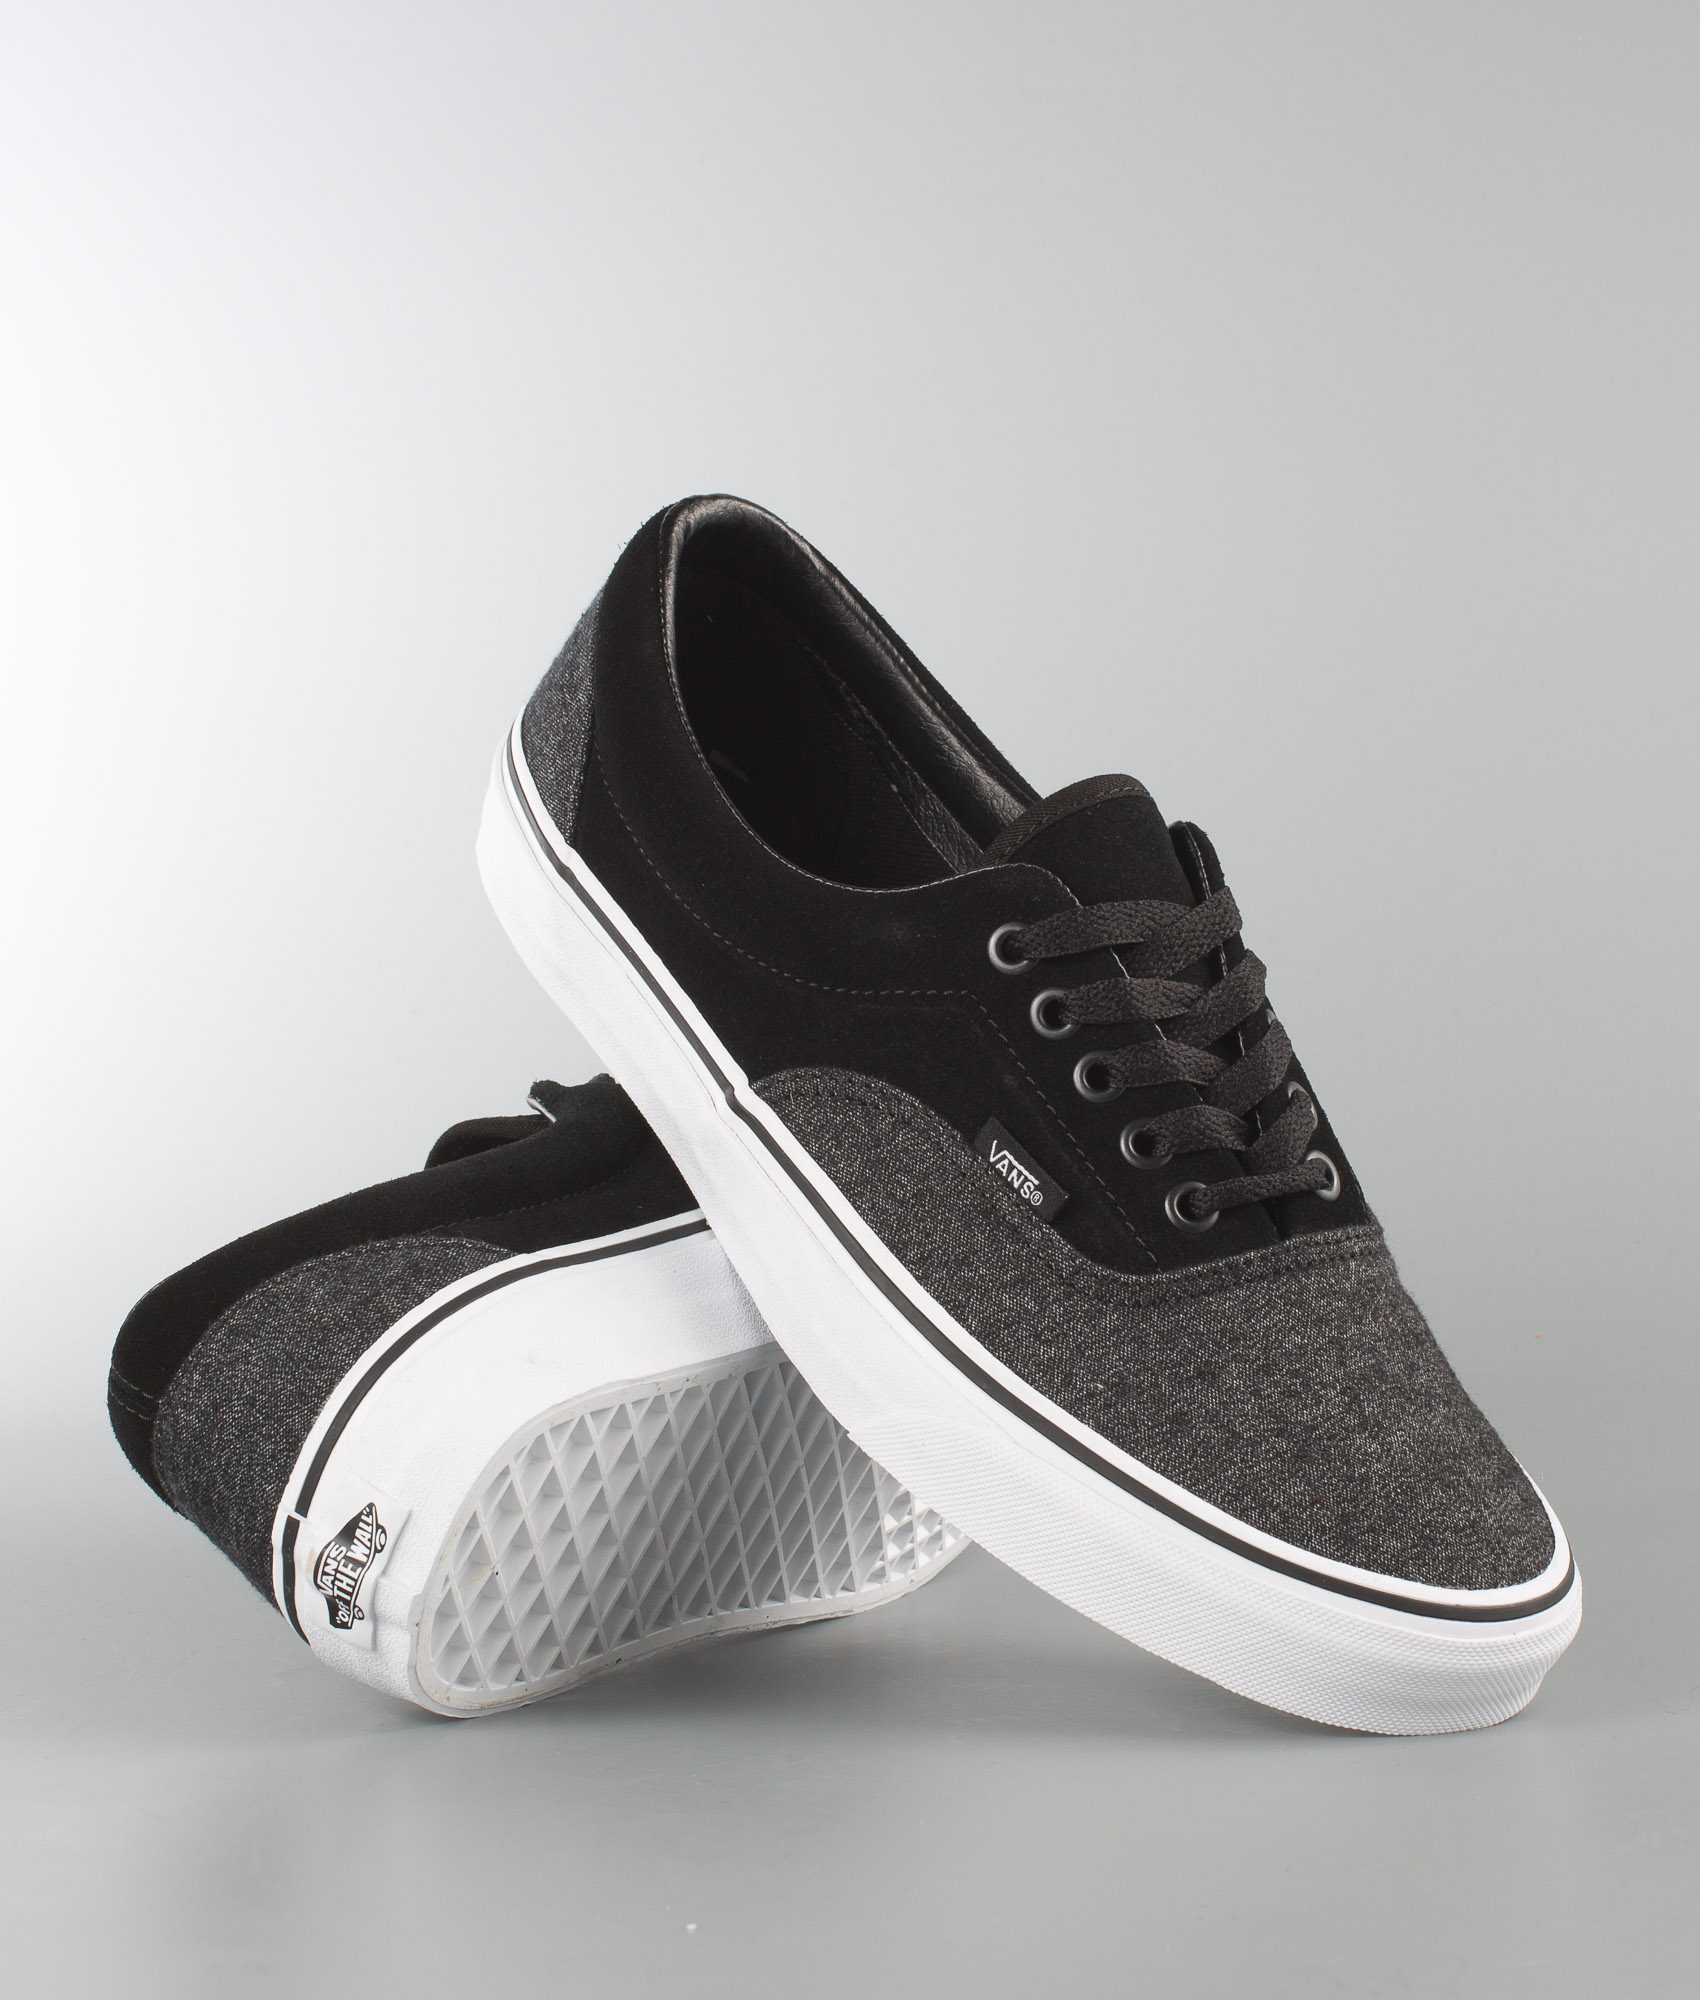 Shoes Era suede amp; Suiting Black Vans 5pBq77